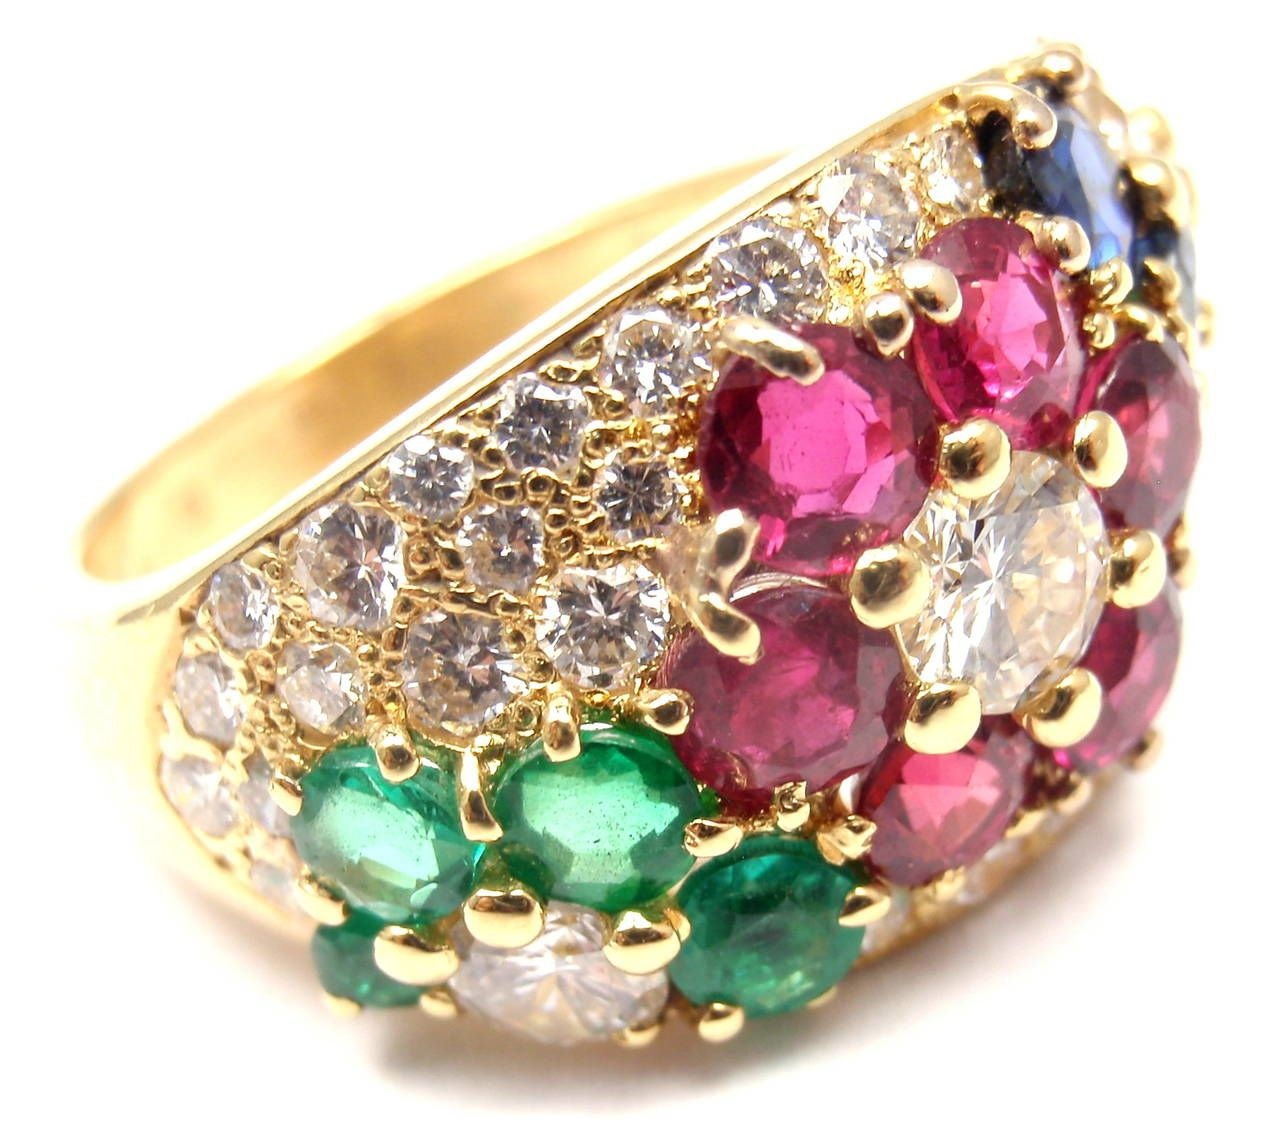 Van Cleef & Arpels Ruby Emerald Sapphire Gold Ring   From a unique collection of vintage cocktail rings at https://www.1stdibs.com/jewelry/rings/cocktail-rings/